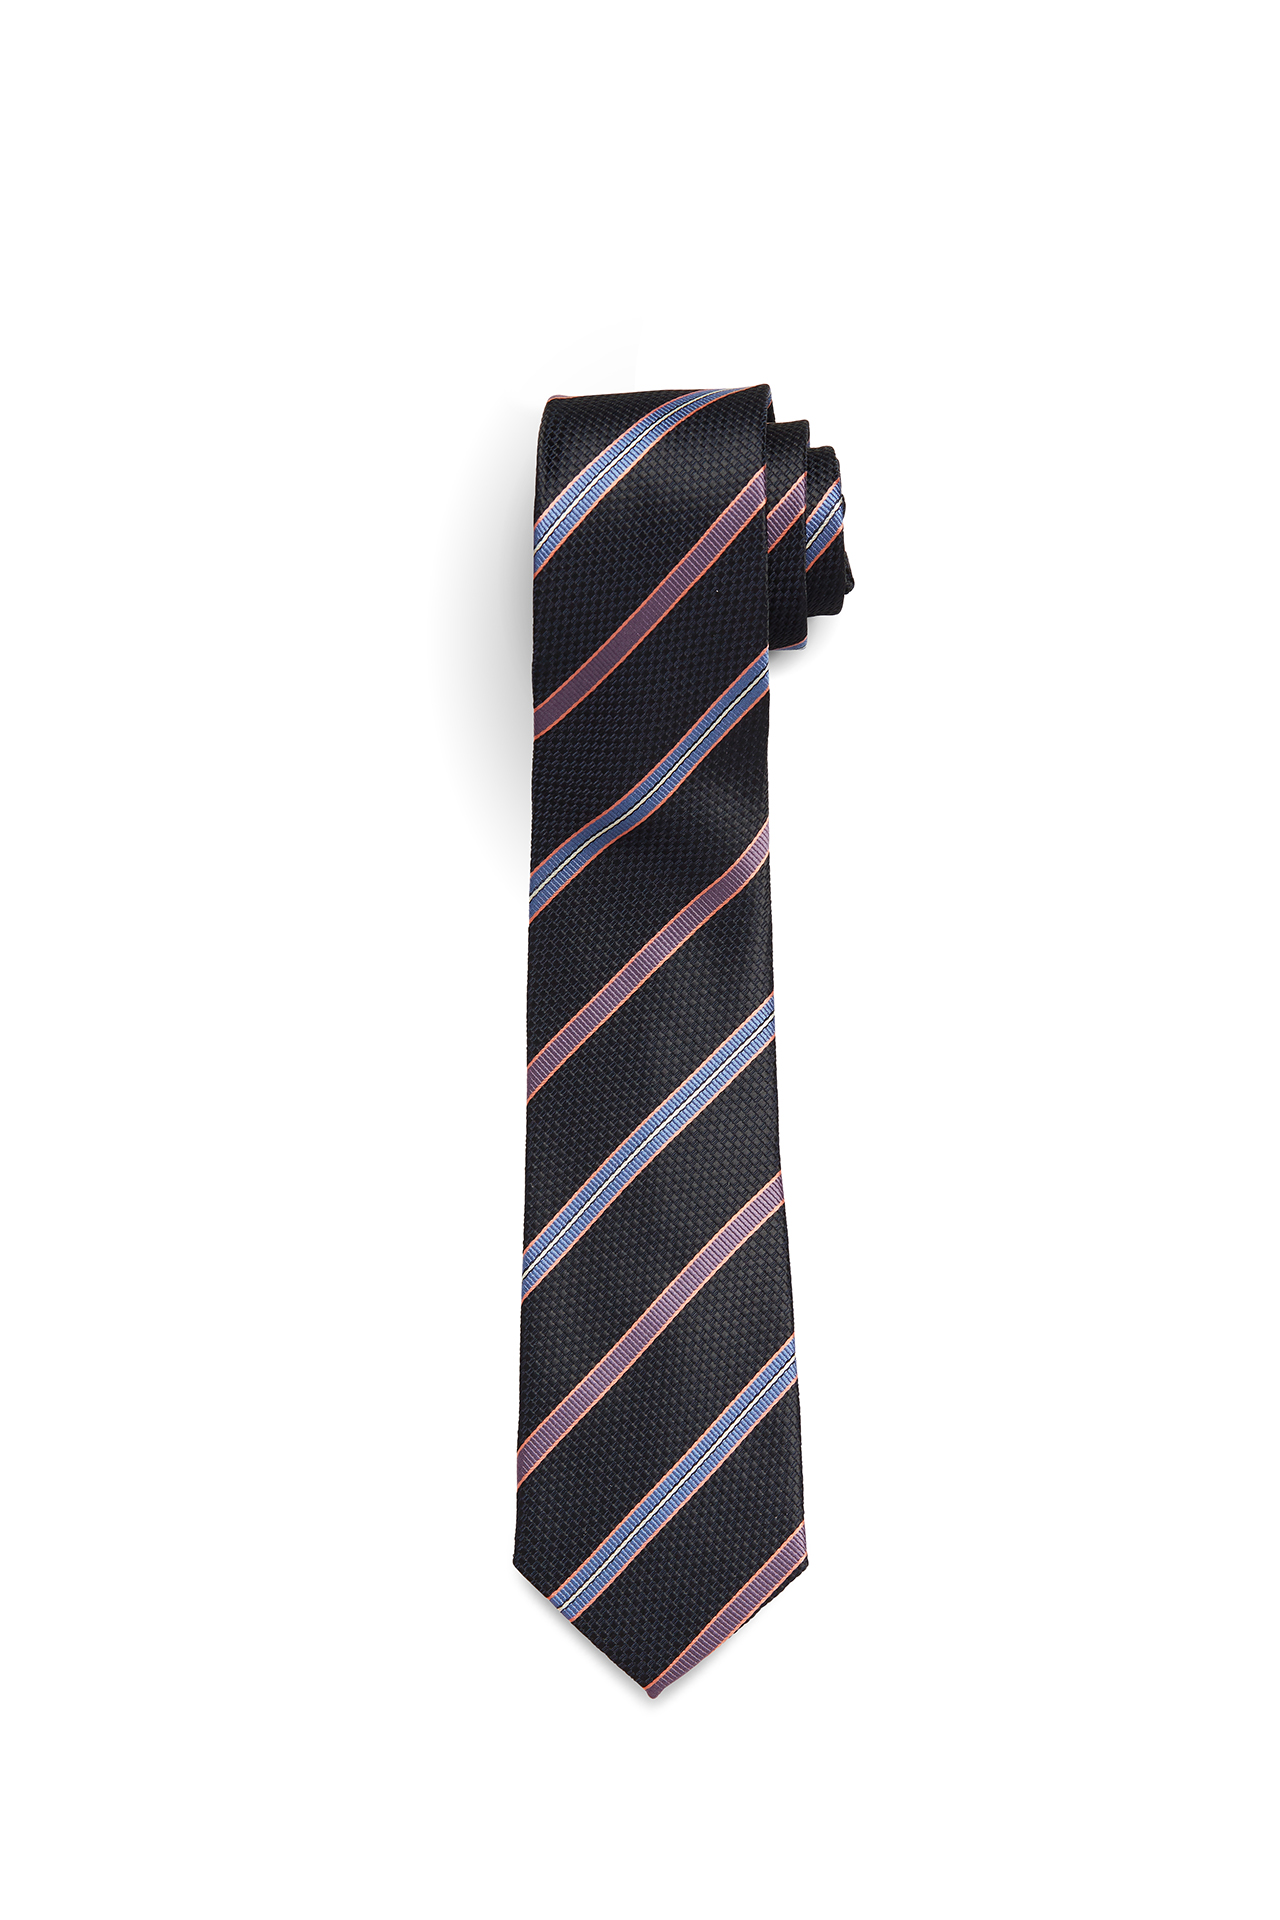 Black with Coral, Lavender and Blue Stripe Tie